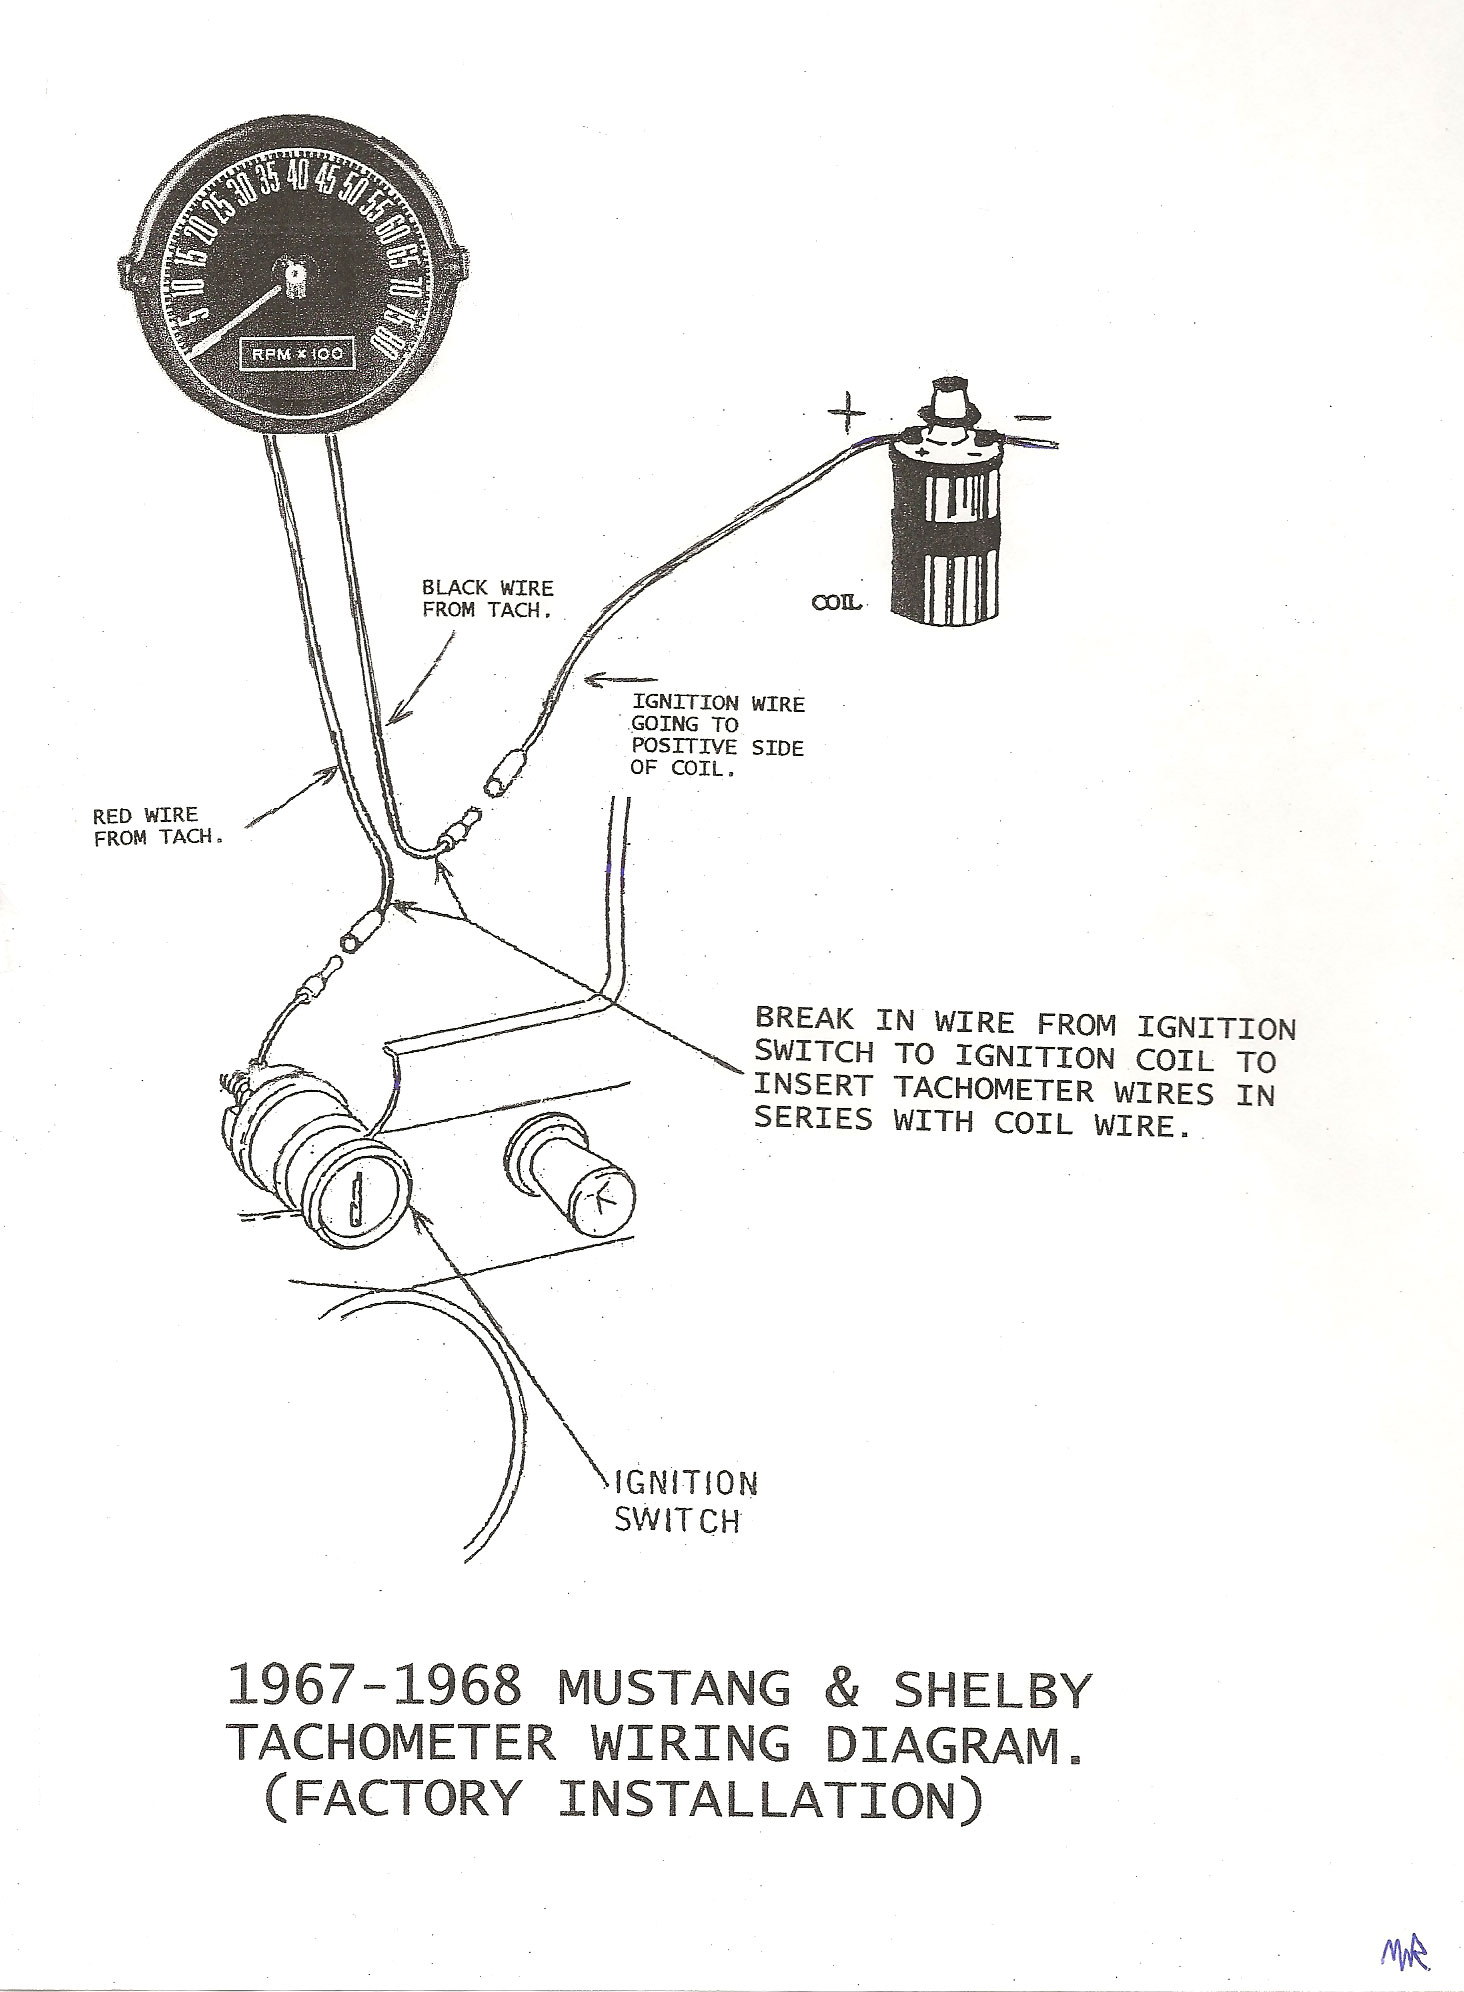 1967 Shelby Wiring Diagram Schematic 69 Vw Engine Tech Info Charger 68 Mustang Factory Tach Jpeg Image